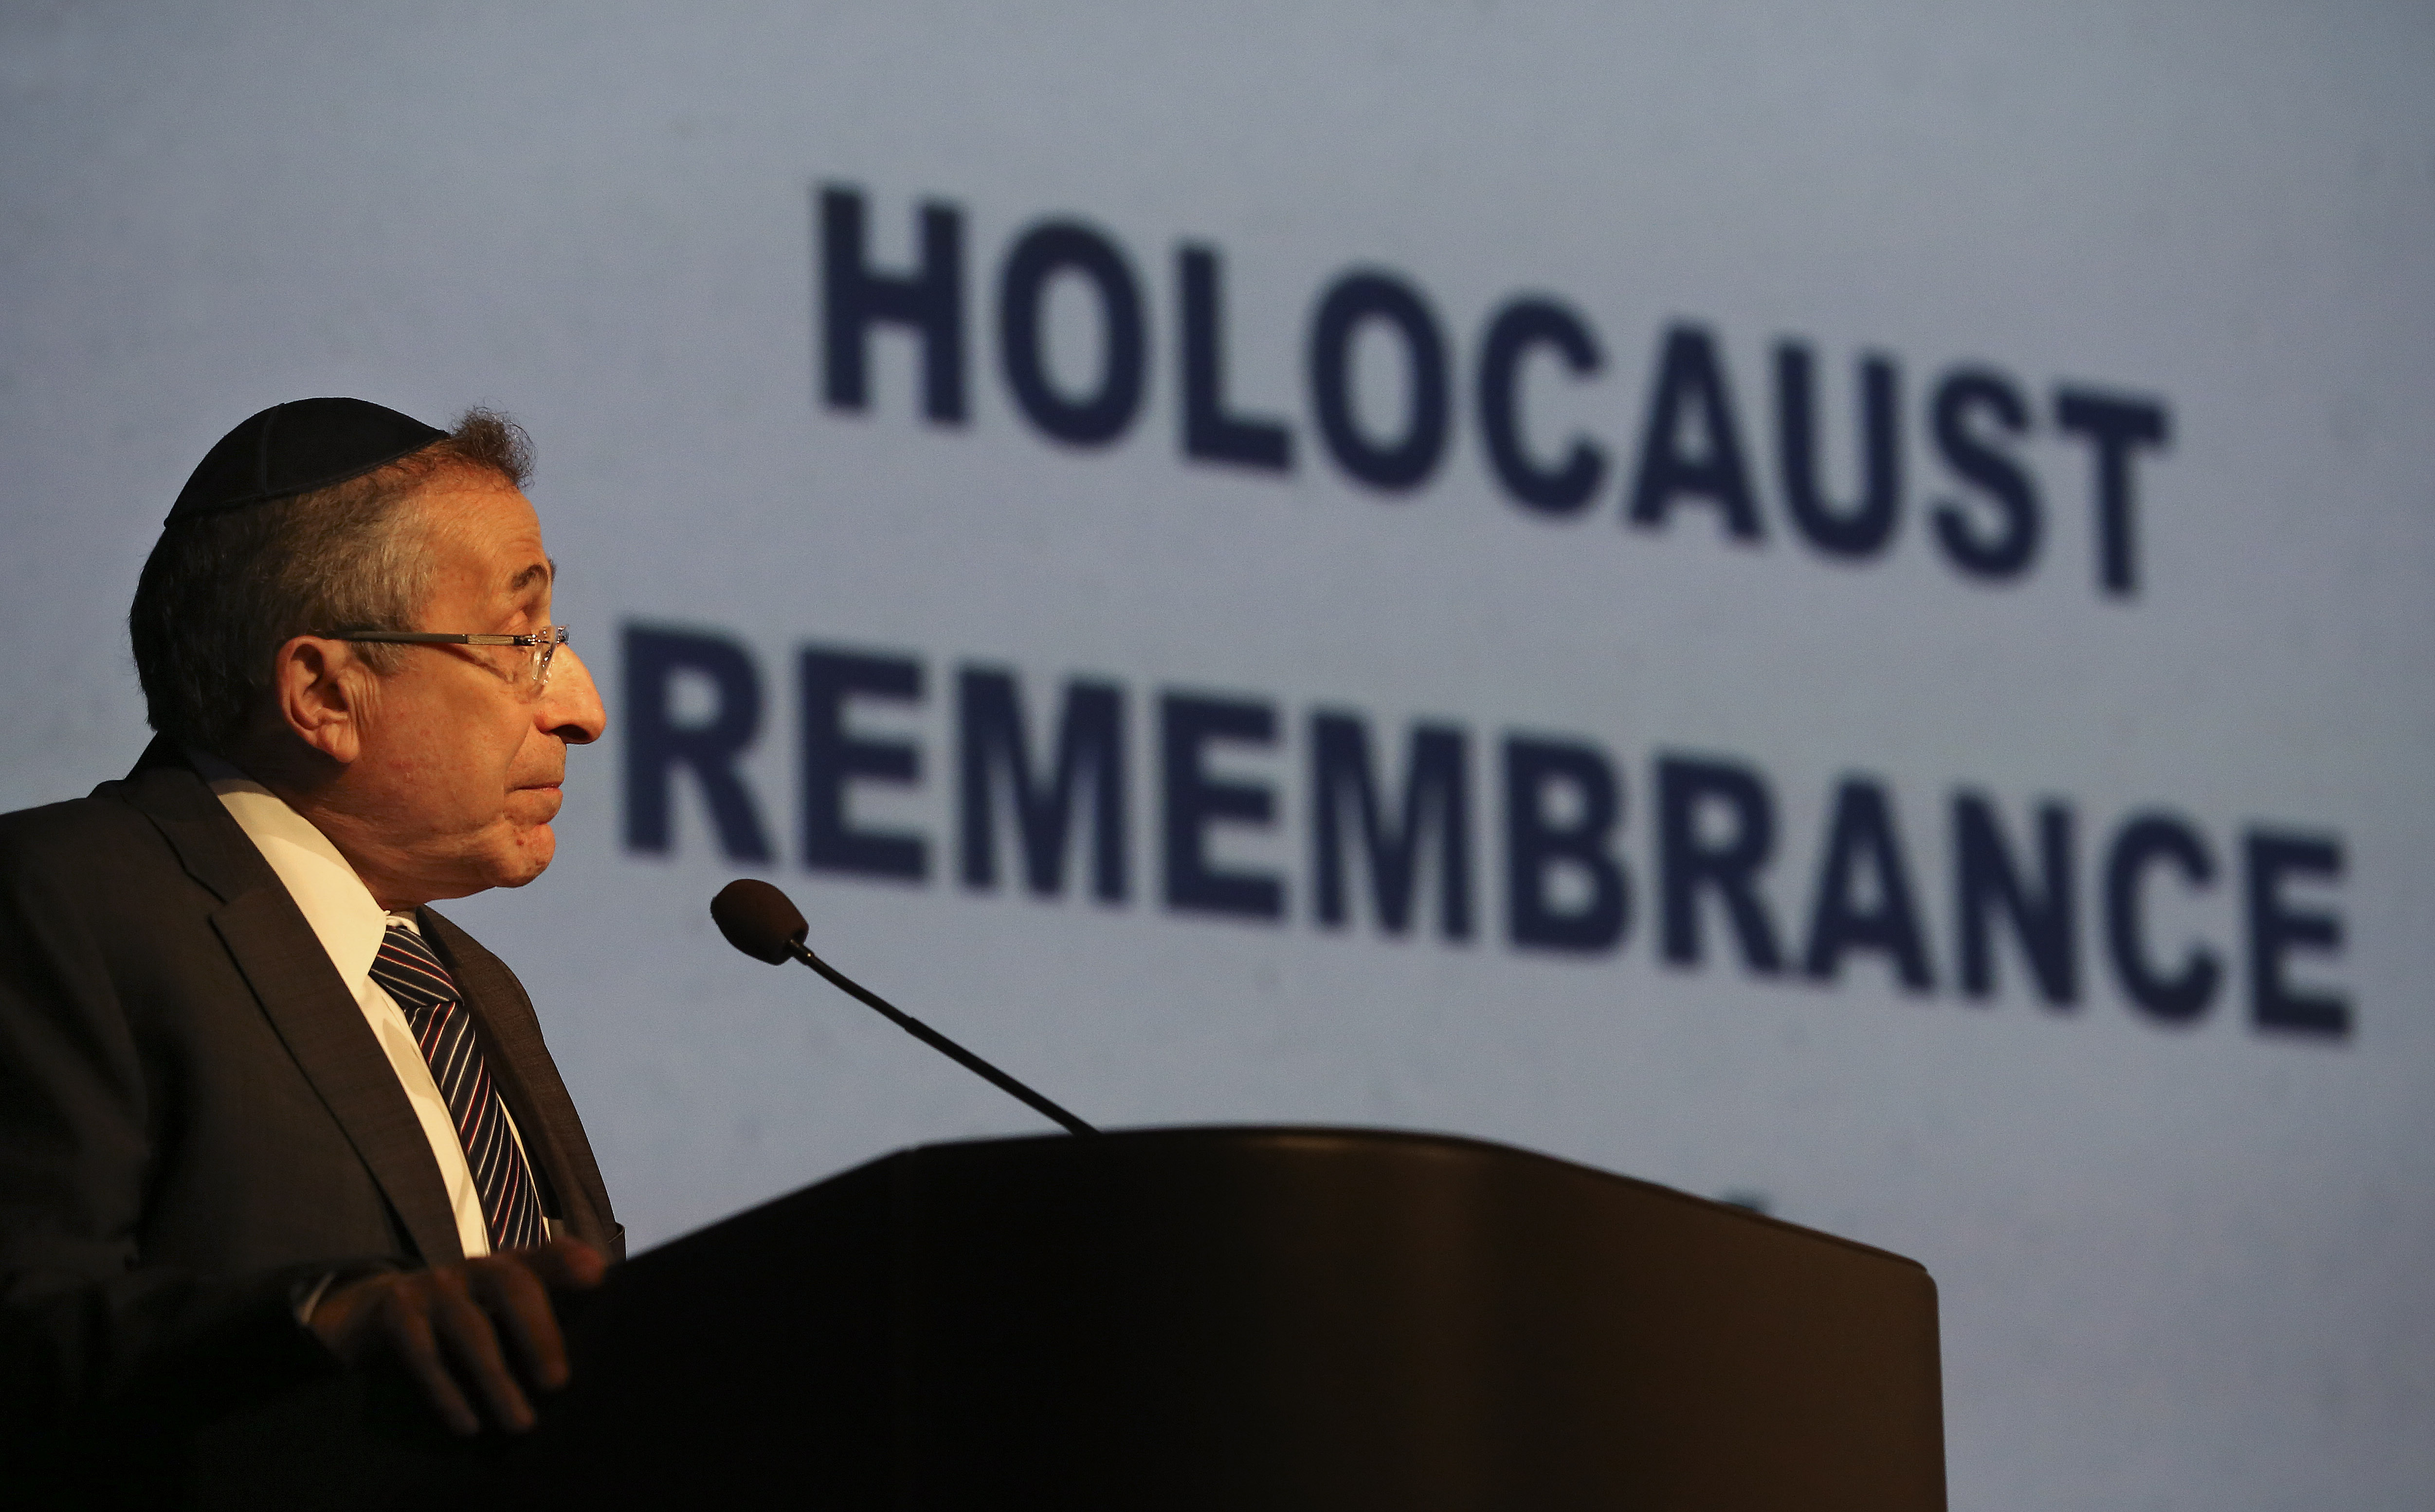 Rabbi Marvin Hier, Founder and Dean of the Simon Wiesenthal Center in Los Angeles, delivers the keynote address during Holocaust Remembrance Day at the Simon Wiesenthal Center on April 16, 2015 in Los Angeles, California.